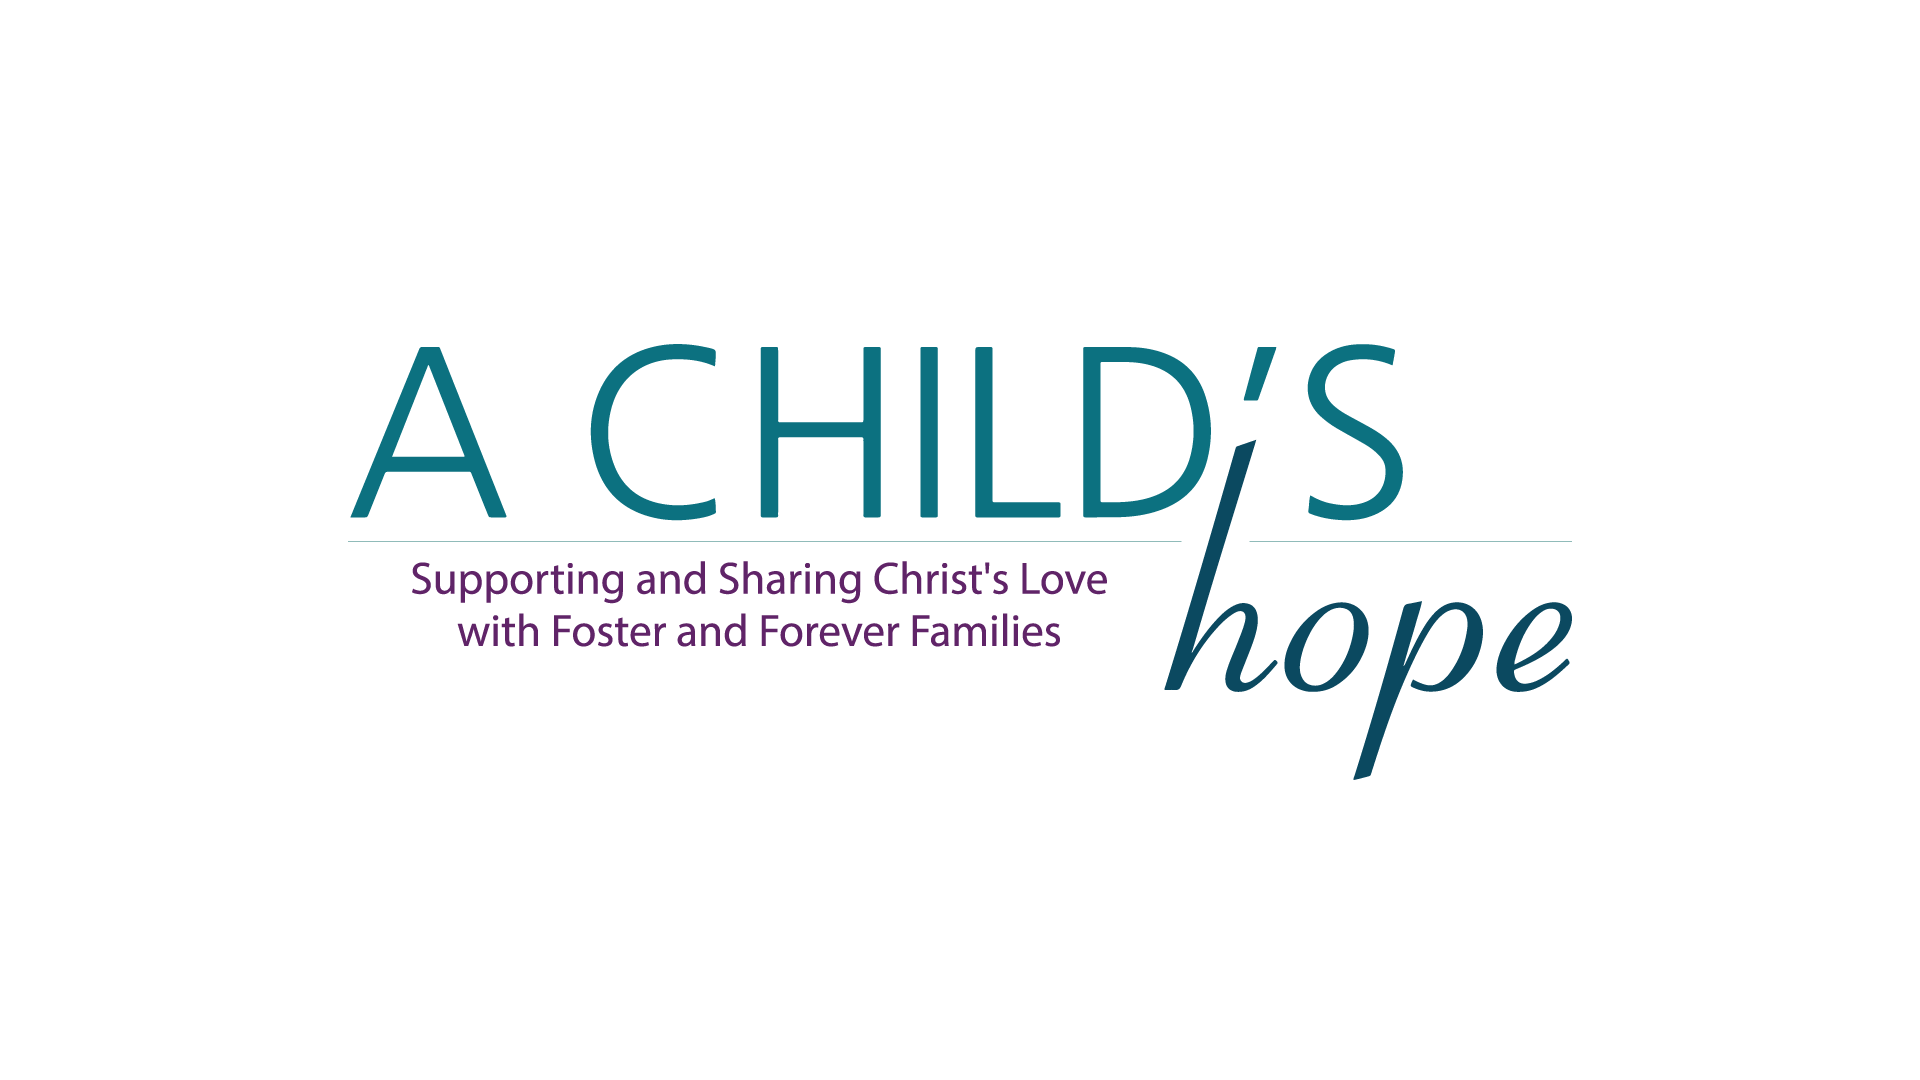 Resurrection West Foster & Adoption Ministry (A Child's Hope)